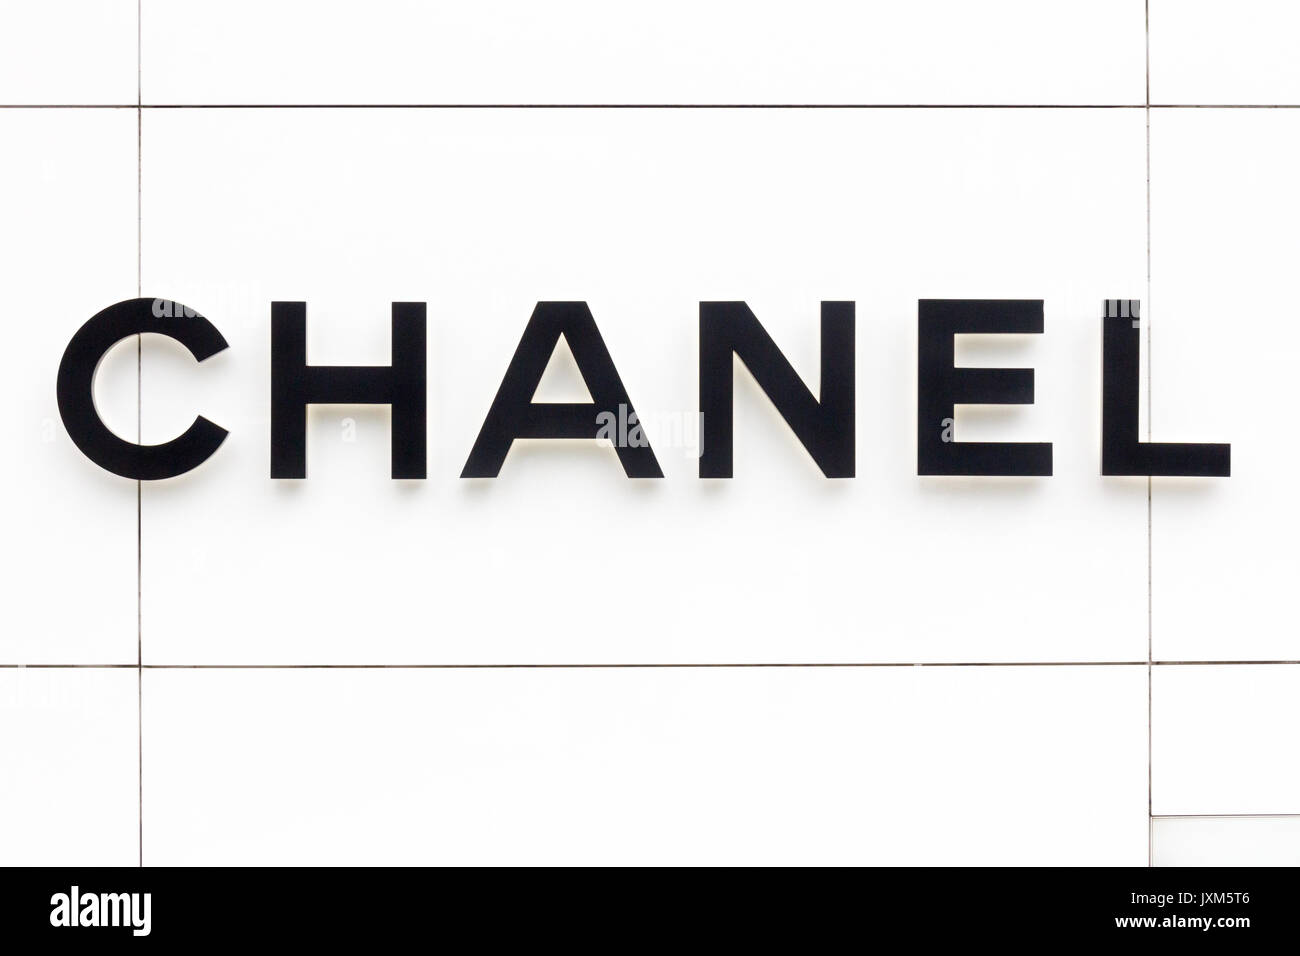 Chanel Sign Stock Photos & Chanel Sign Stock Images